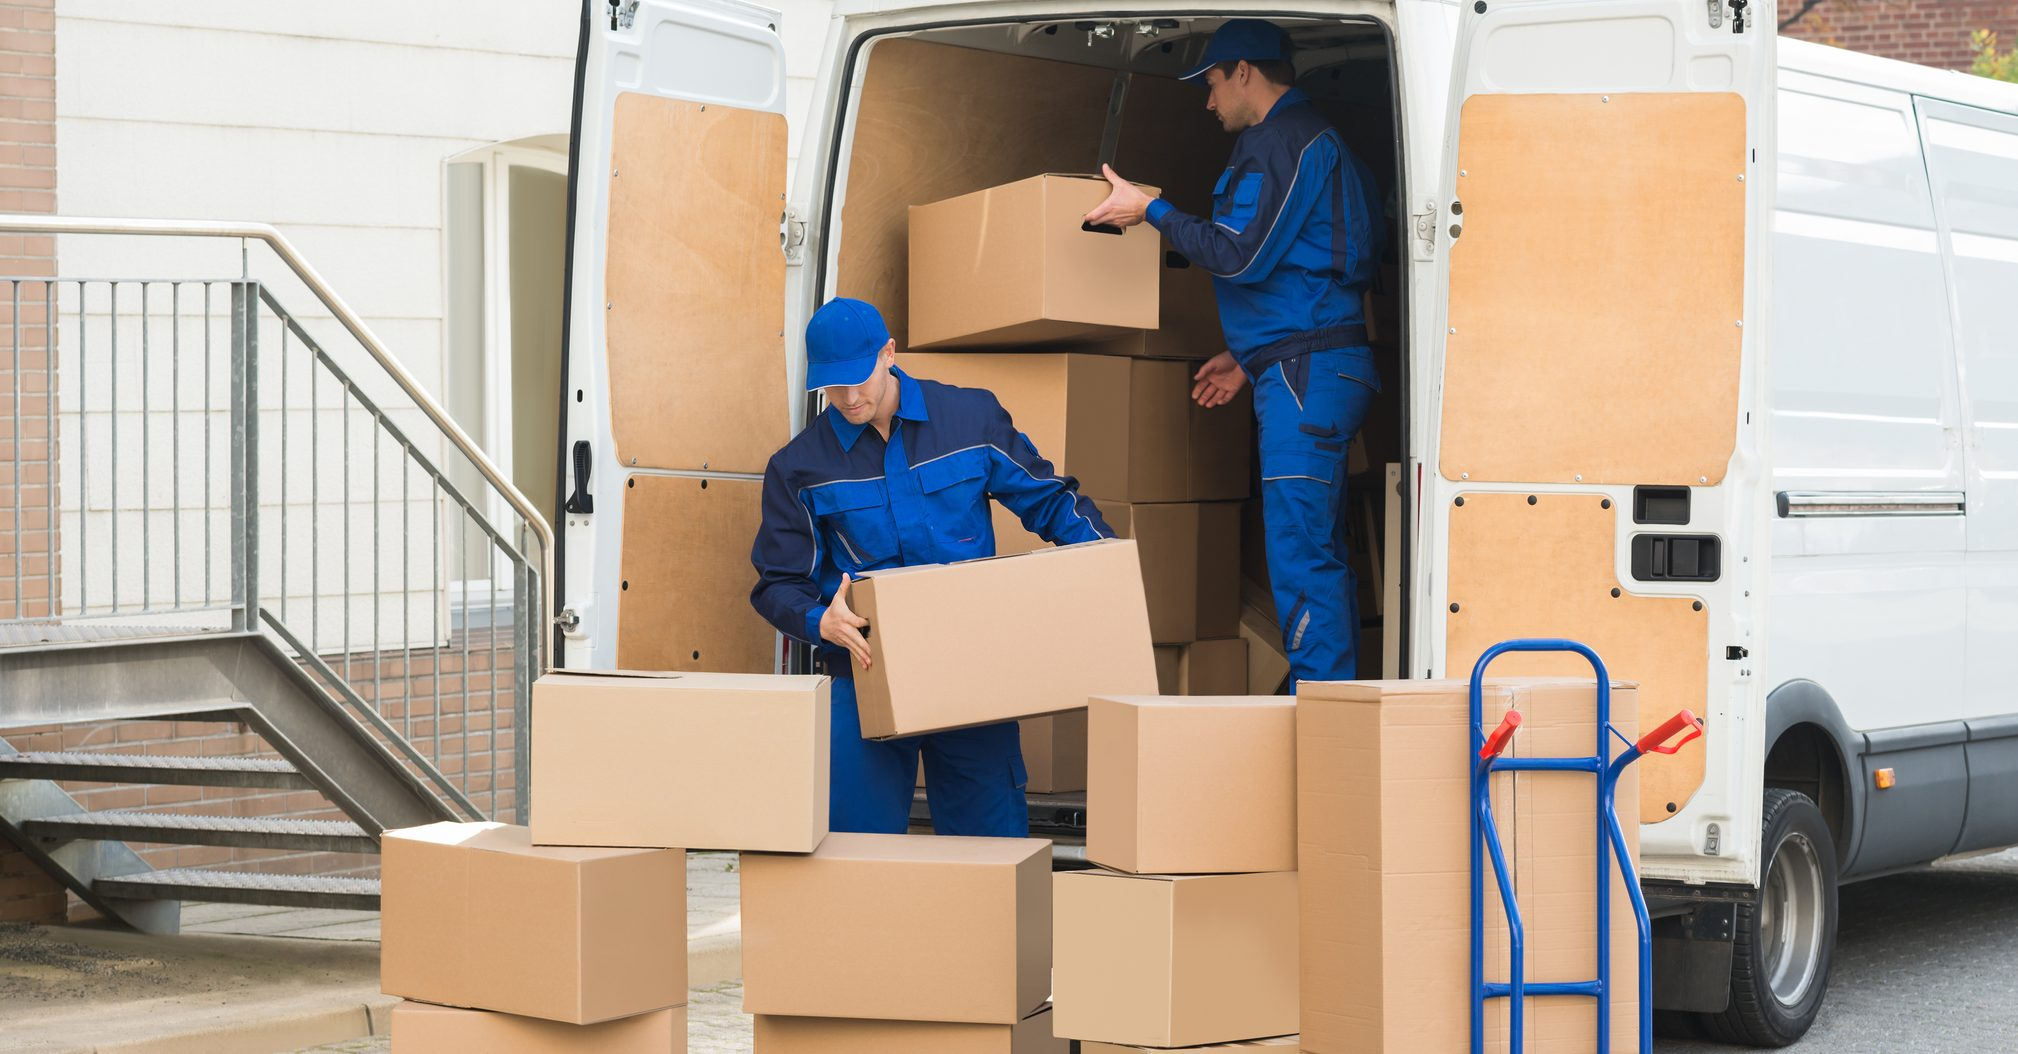 delivery-men-unloading-boxes-on-street-77509344-e1514826845397